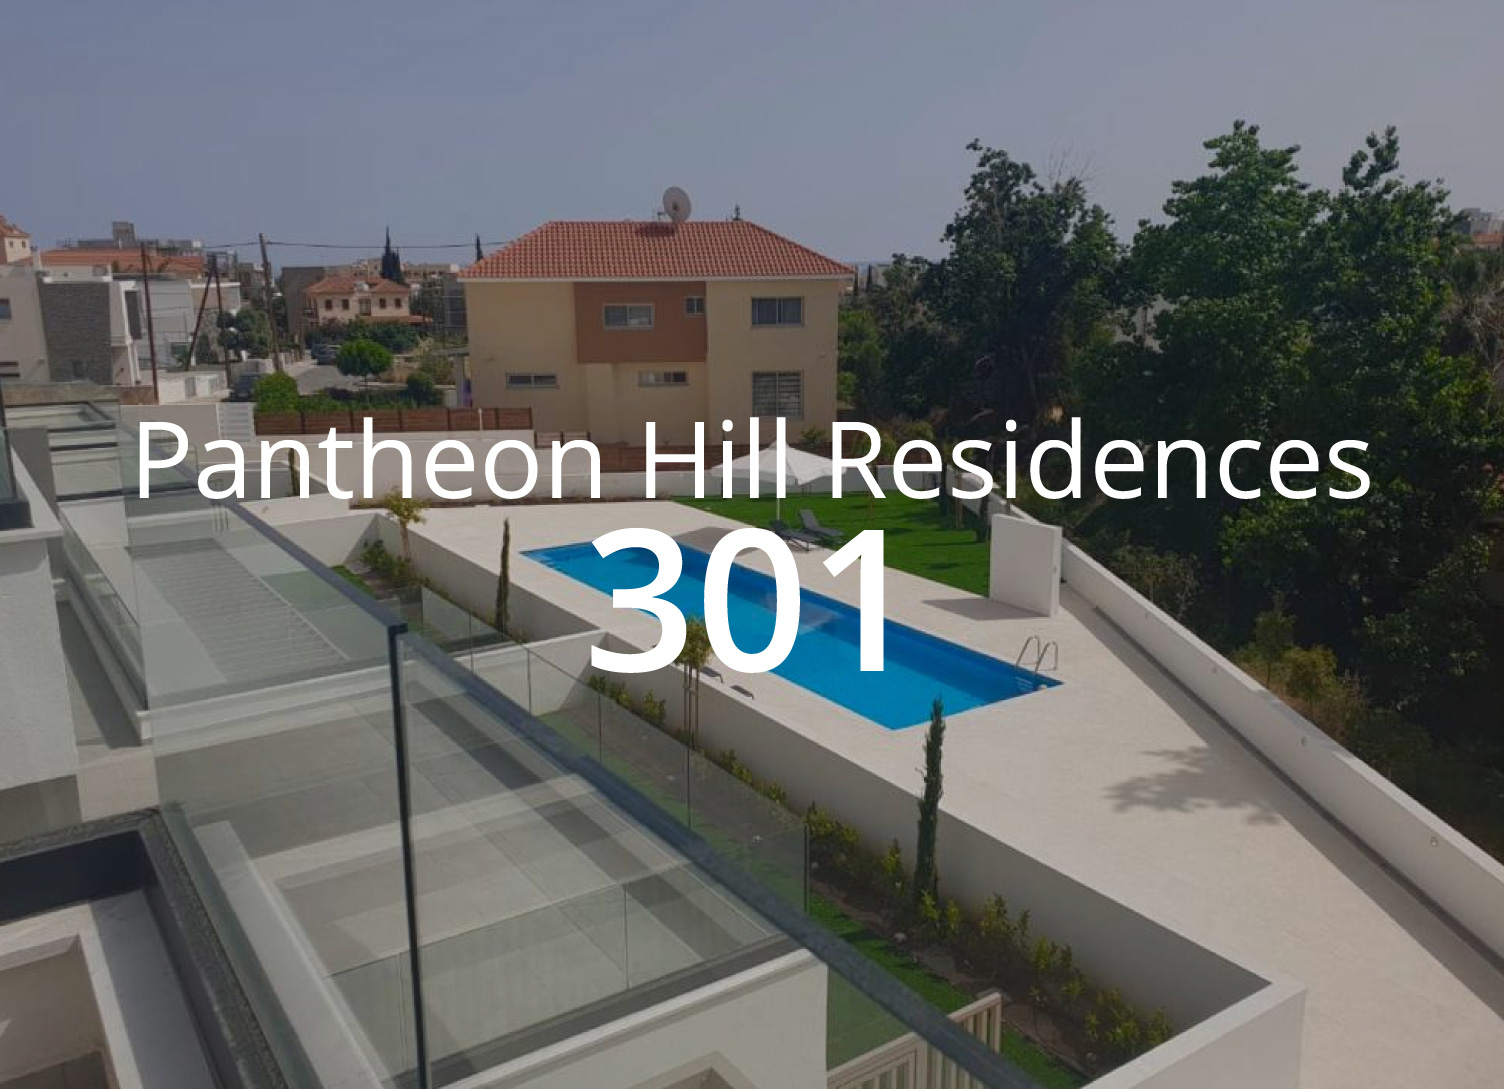 pantheon, pantheonhillresidences, imperioproperties, cyprus, cyprusproperties, rentals, limassol, panthea, limassolpanthea, rent, apartment